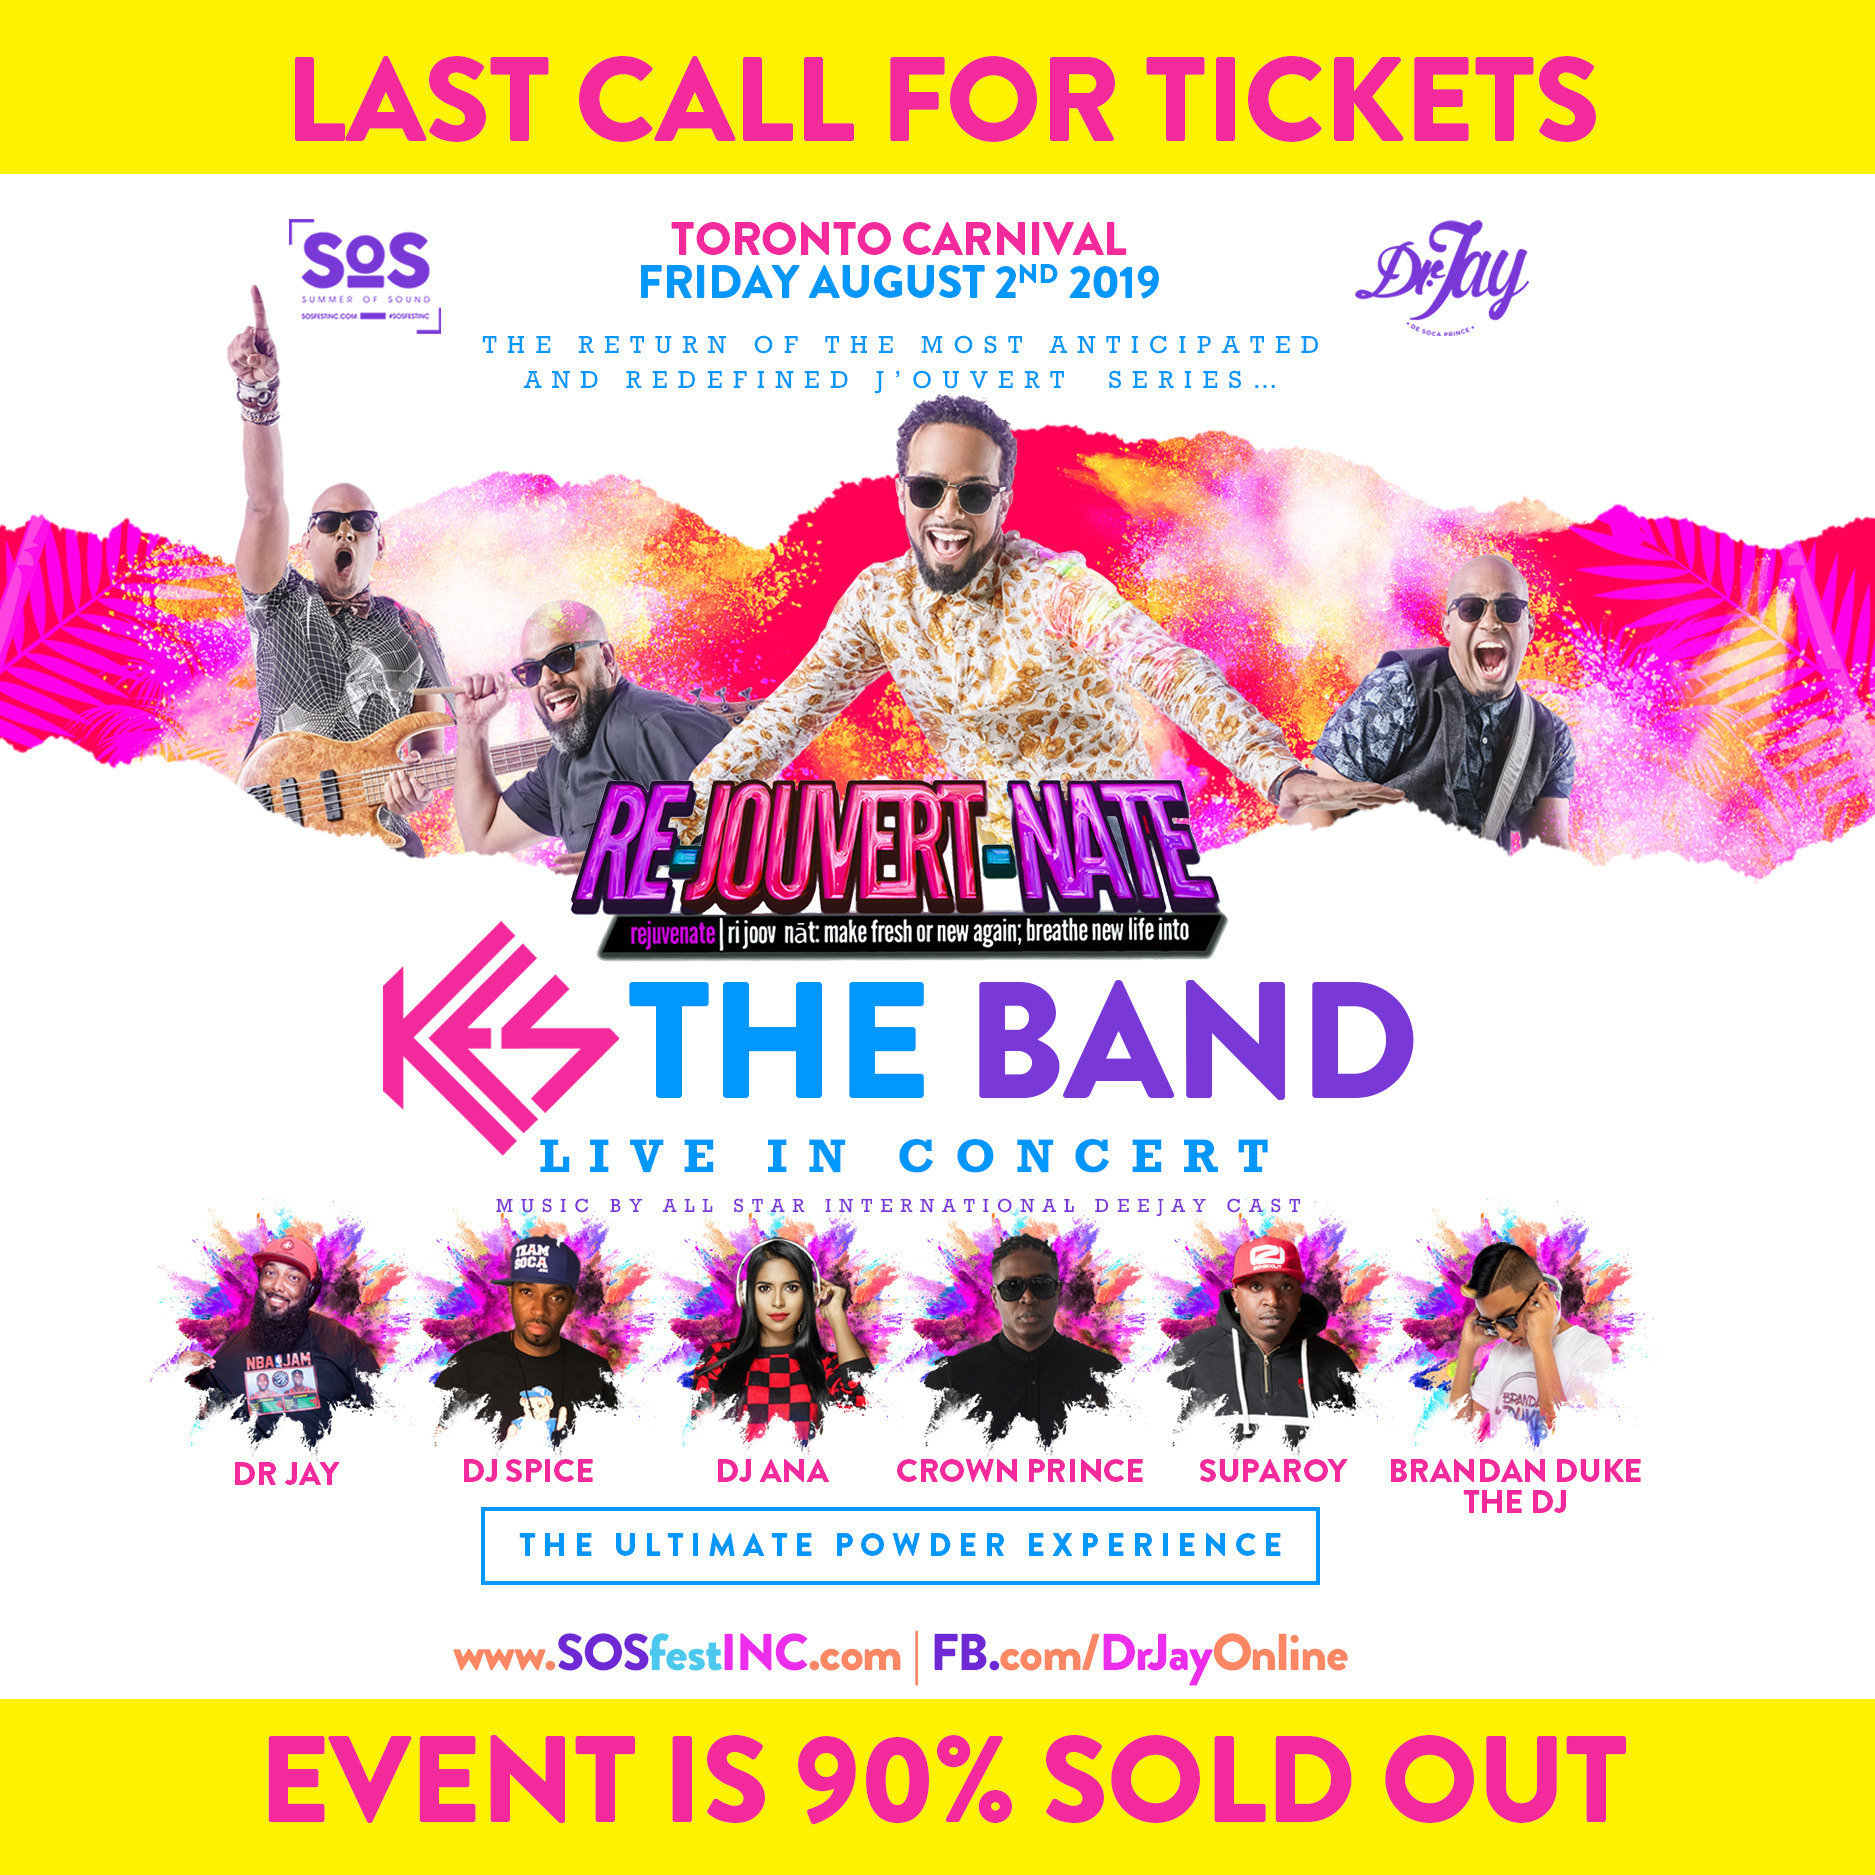 RE JOUVERT NATE | SOS FEST and Dr JAY | KES THE BAND Live in Concert